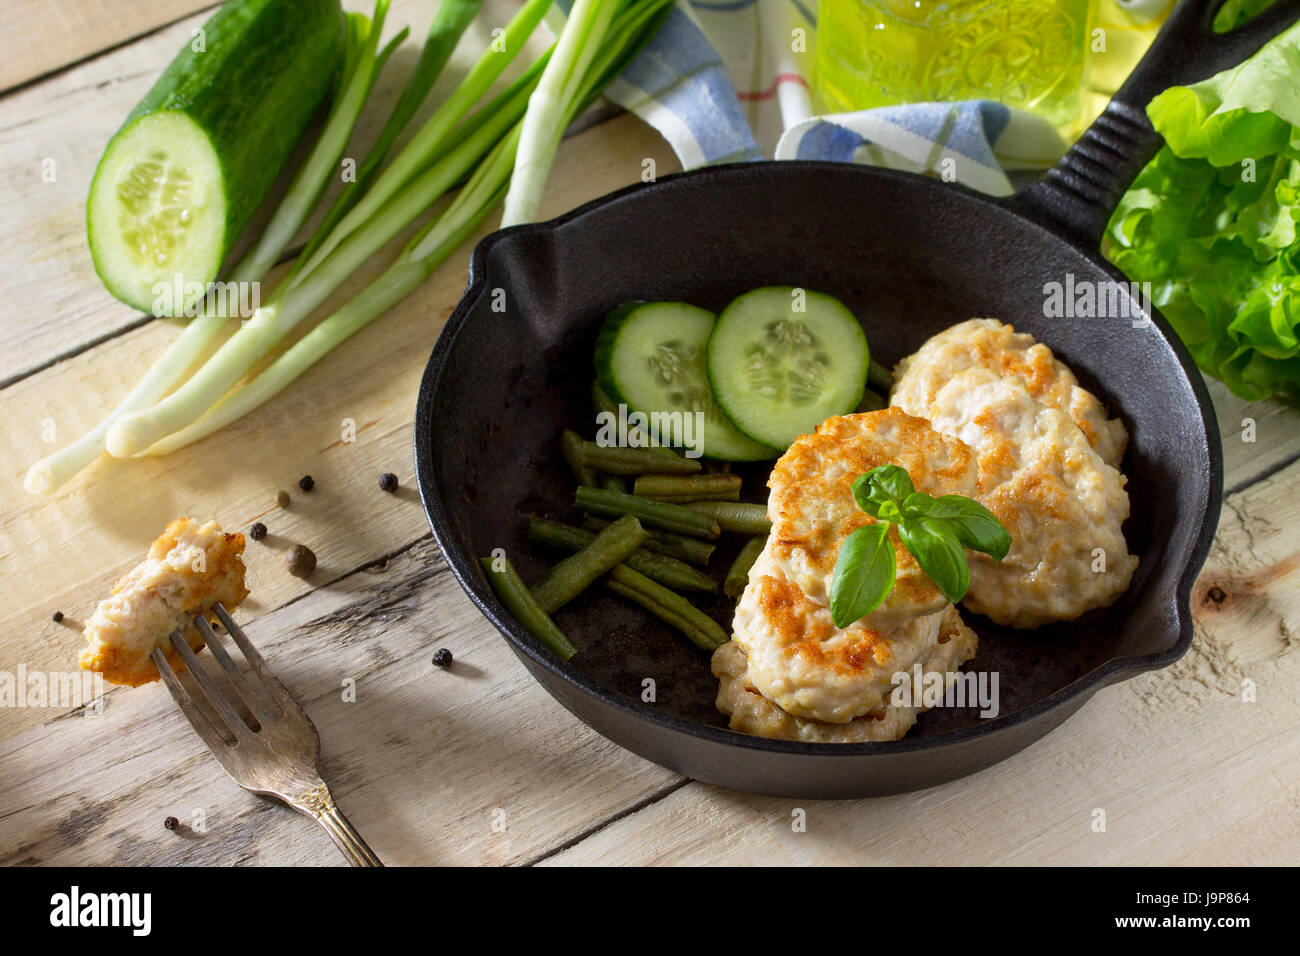 Meat cutlet from minced meat, served in a cast-iron frying pan with green beans kitchen table in a rustic style. - Stock Image